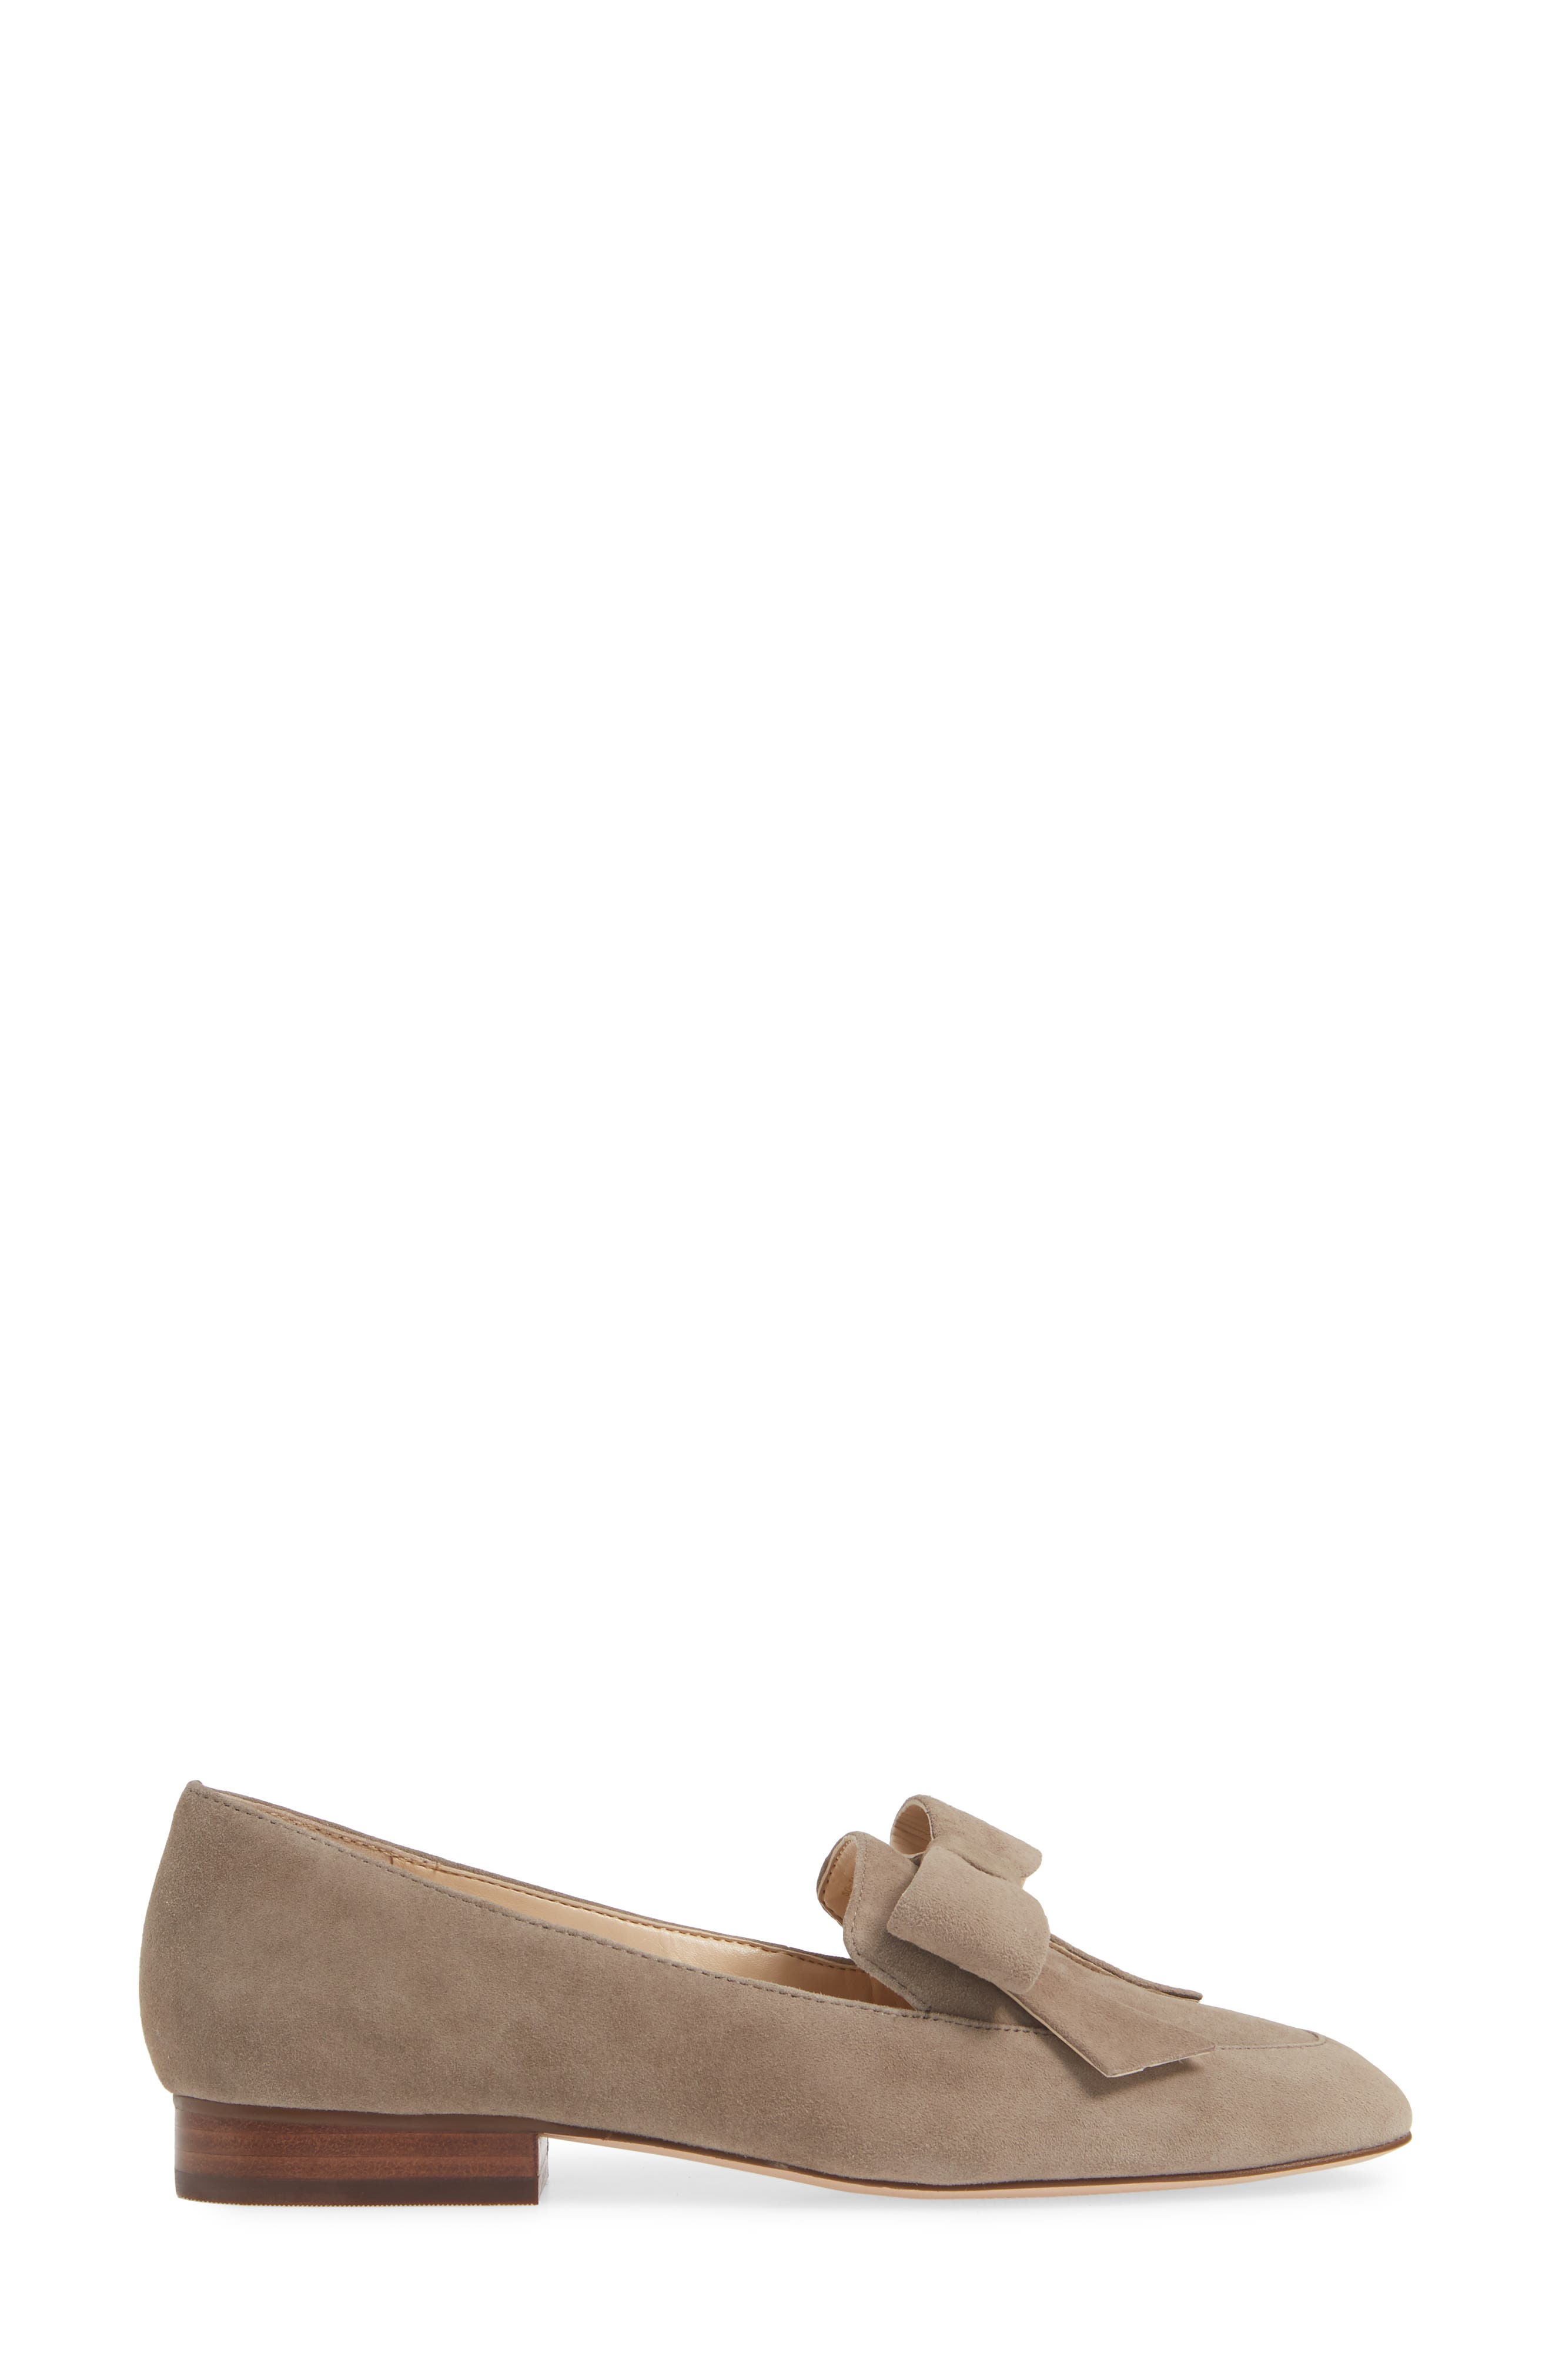 SOLE SOCIETY, Tannse Bow Loafer, Alternate thumbnail 3, color, MUSHROOM SUEDE